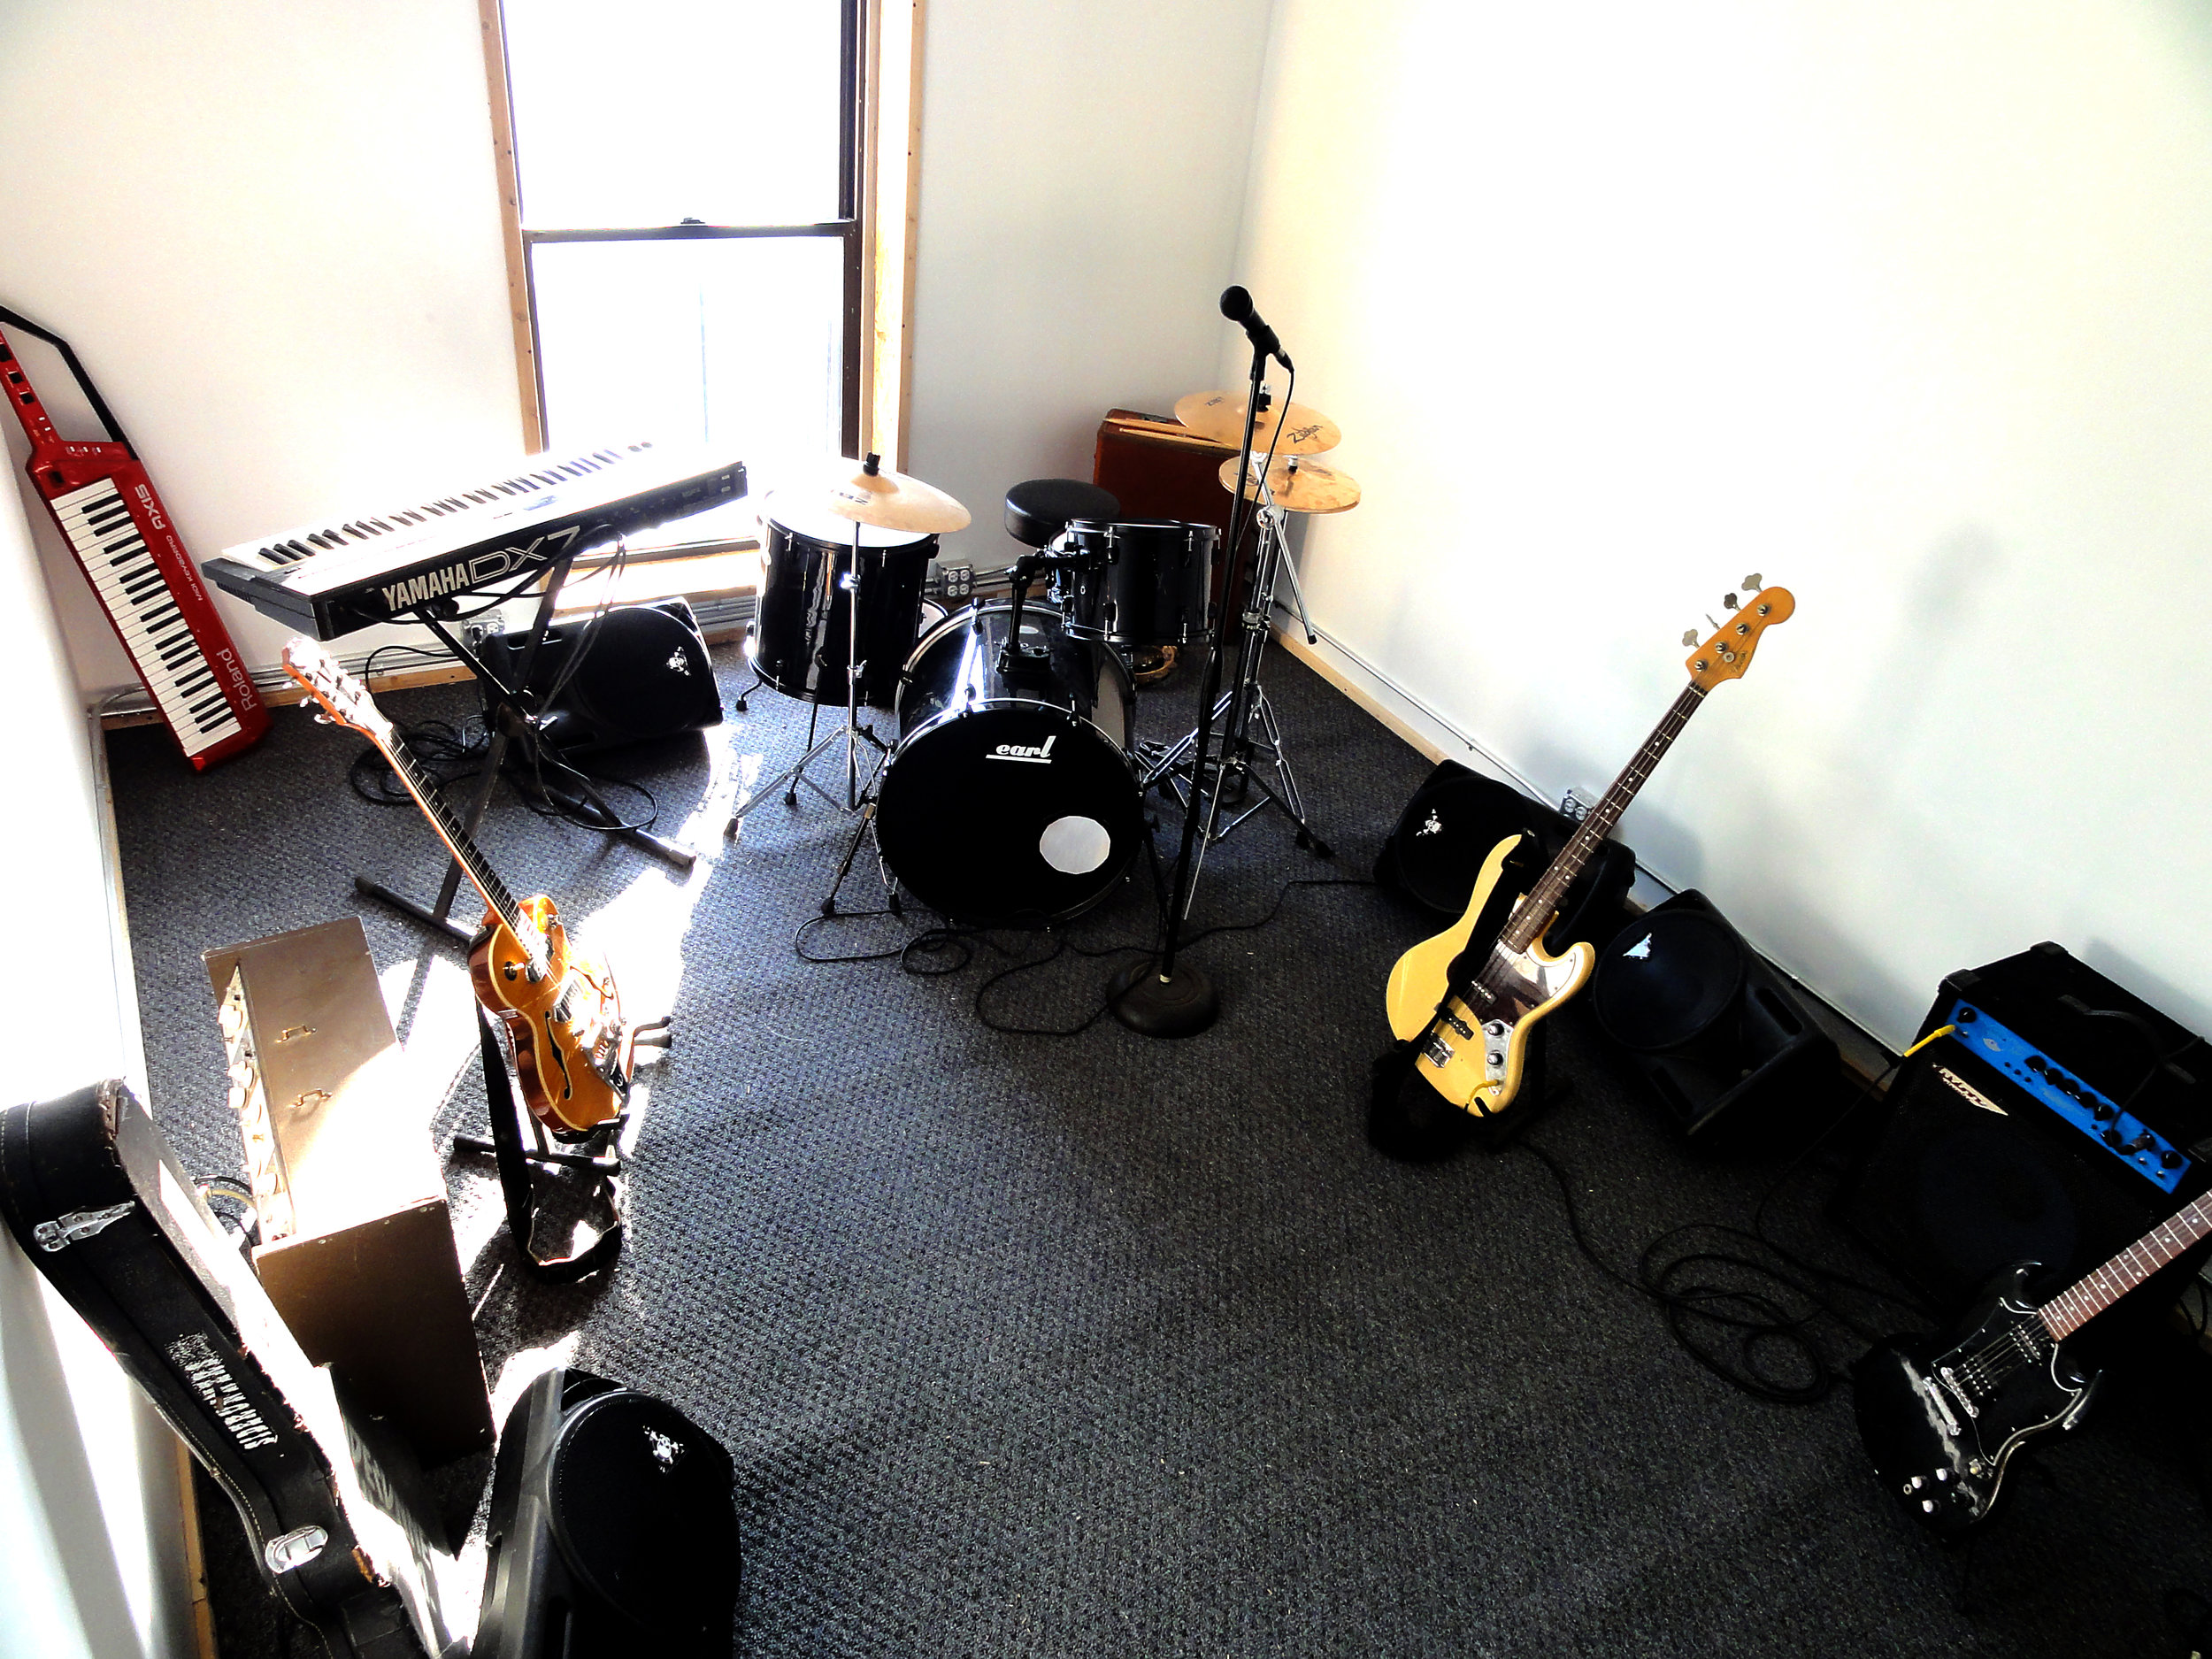 Studio-c7: The Office - We provide a guitar amp, a bass amp, a drum kit. If you'd like to use any special gear, including our Hammond C3 organ, there is an additional $5 charge per piece of gear.Just choose your appointment type, put in your info, and confirm. You can even pay upfront!